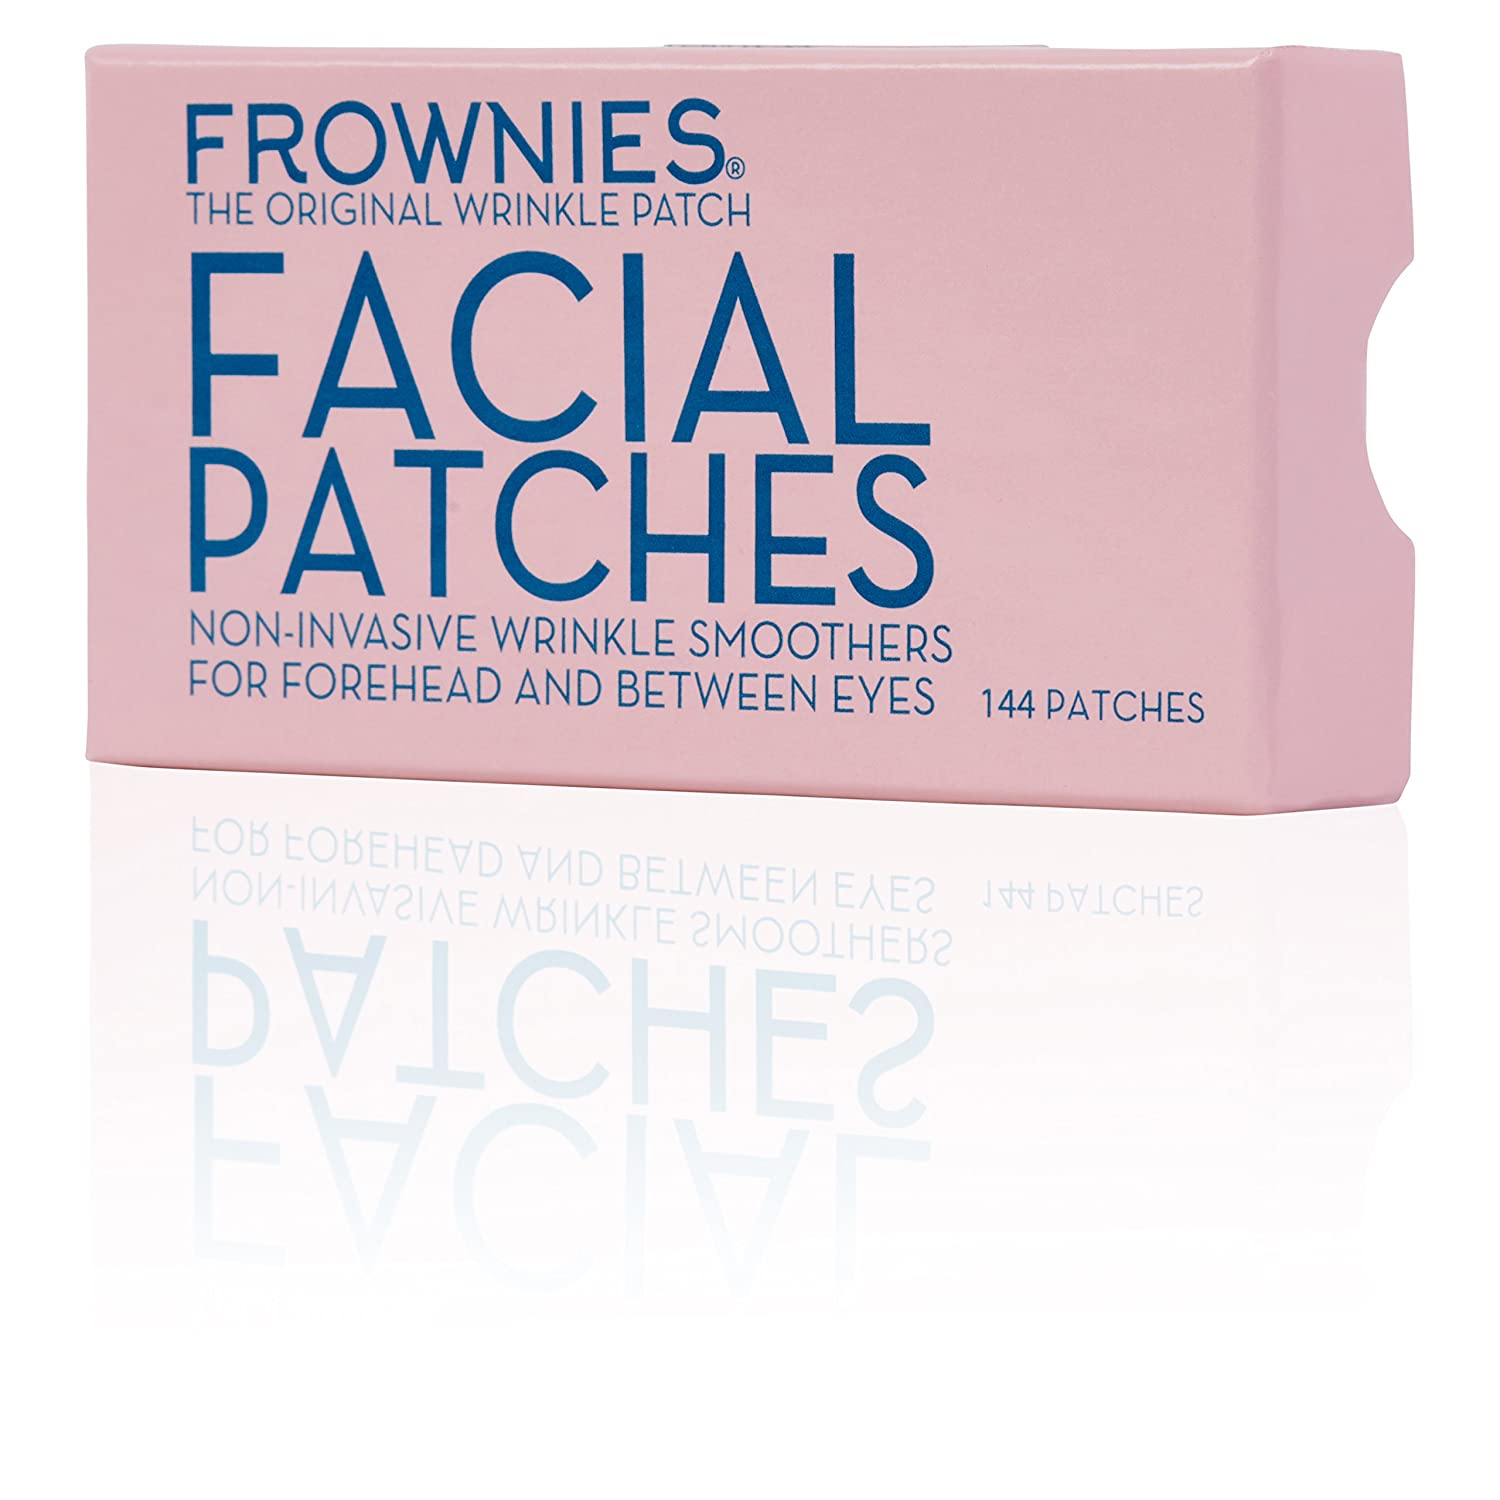 Frownies Forehead & Between Eyes, 144 Patches : Facial Night Treatments : Beauty